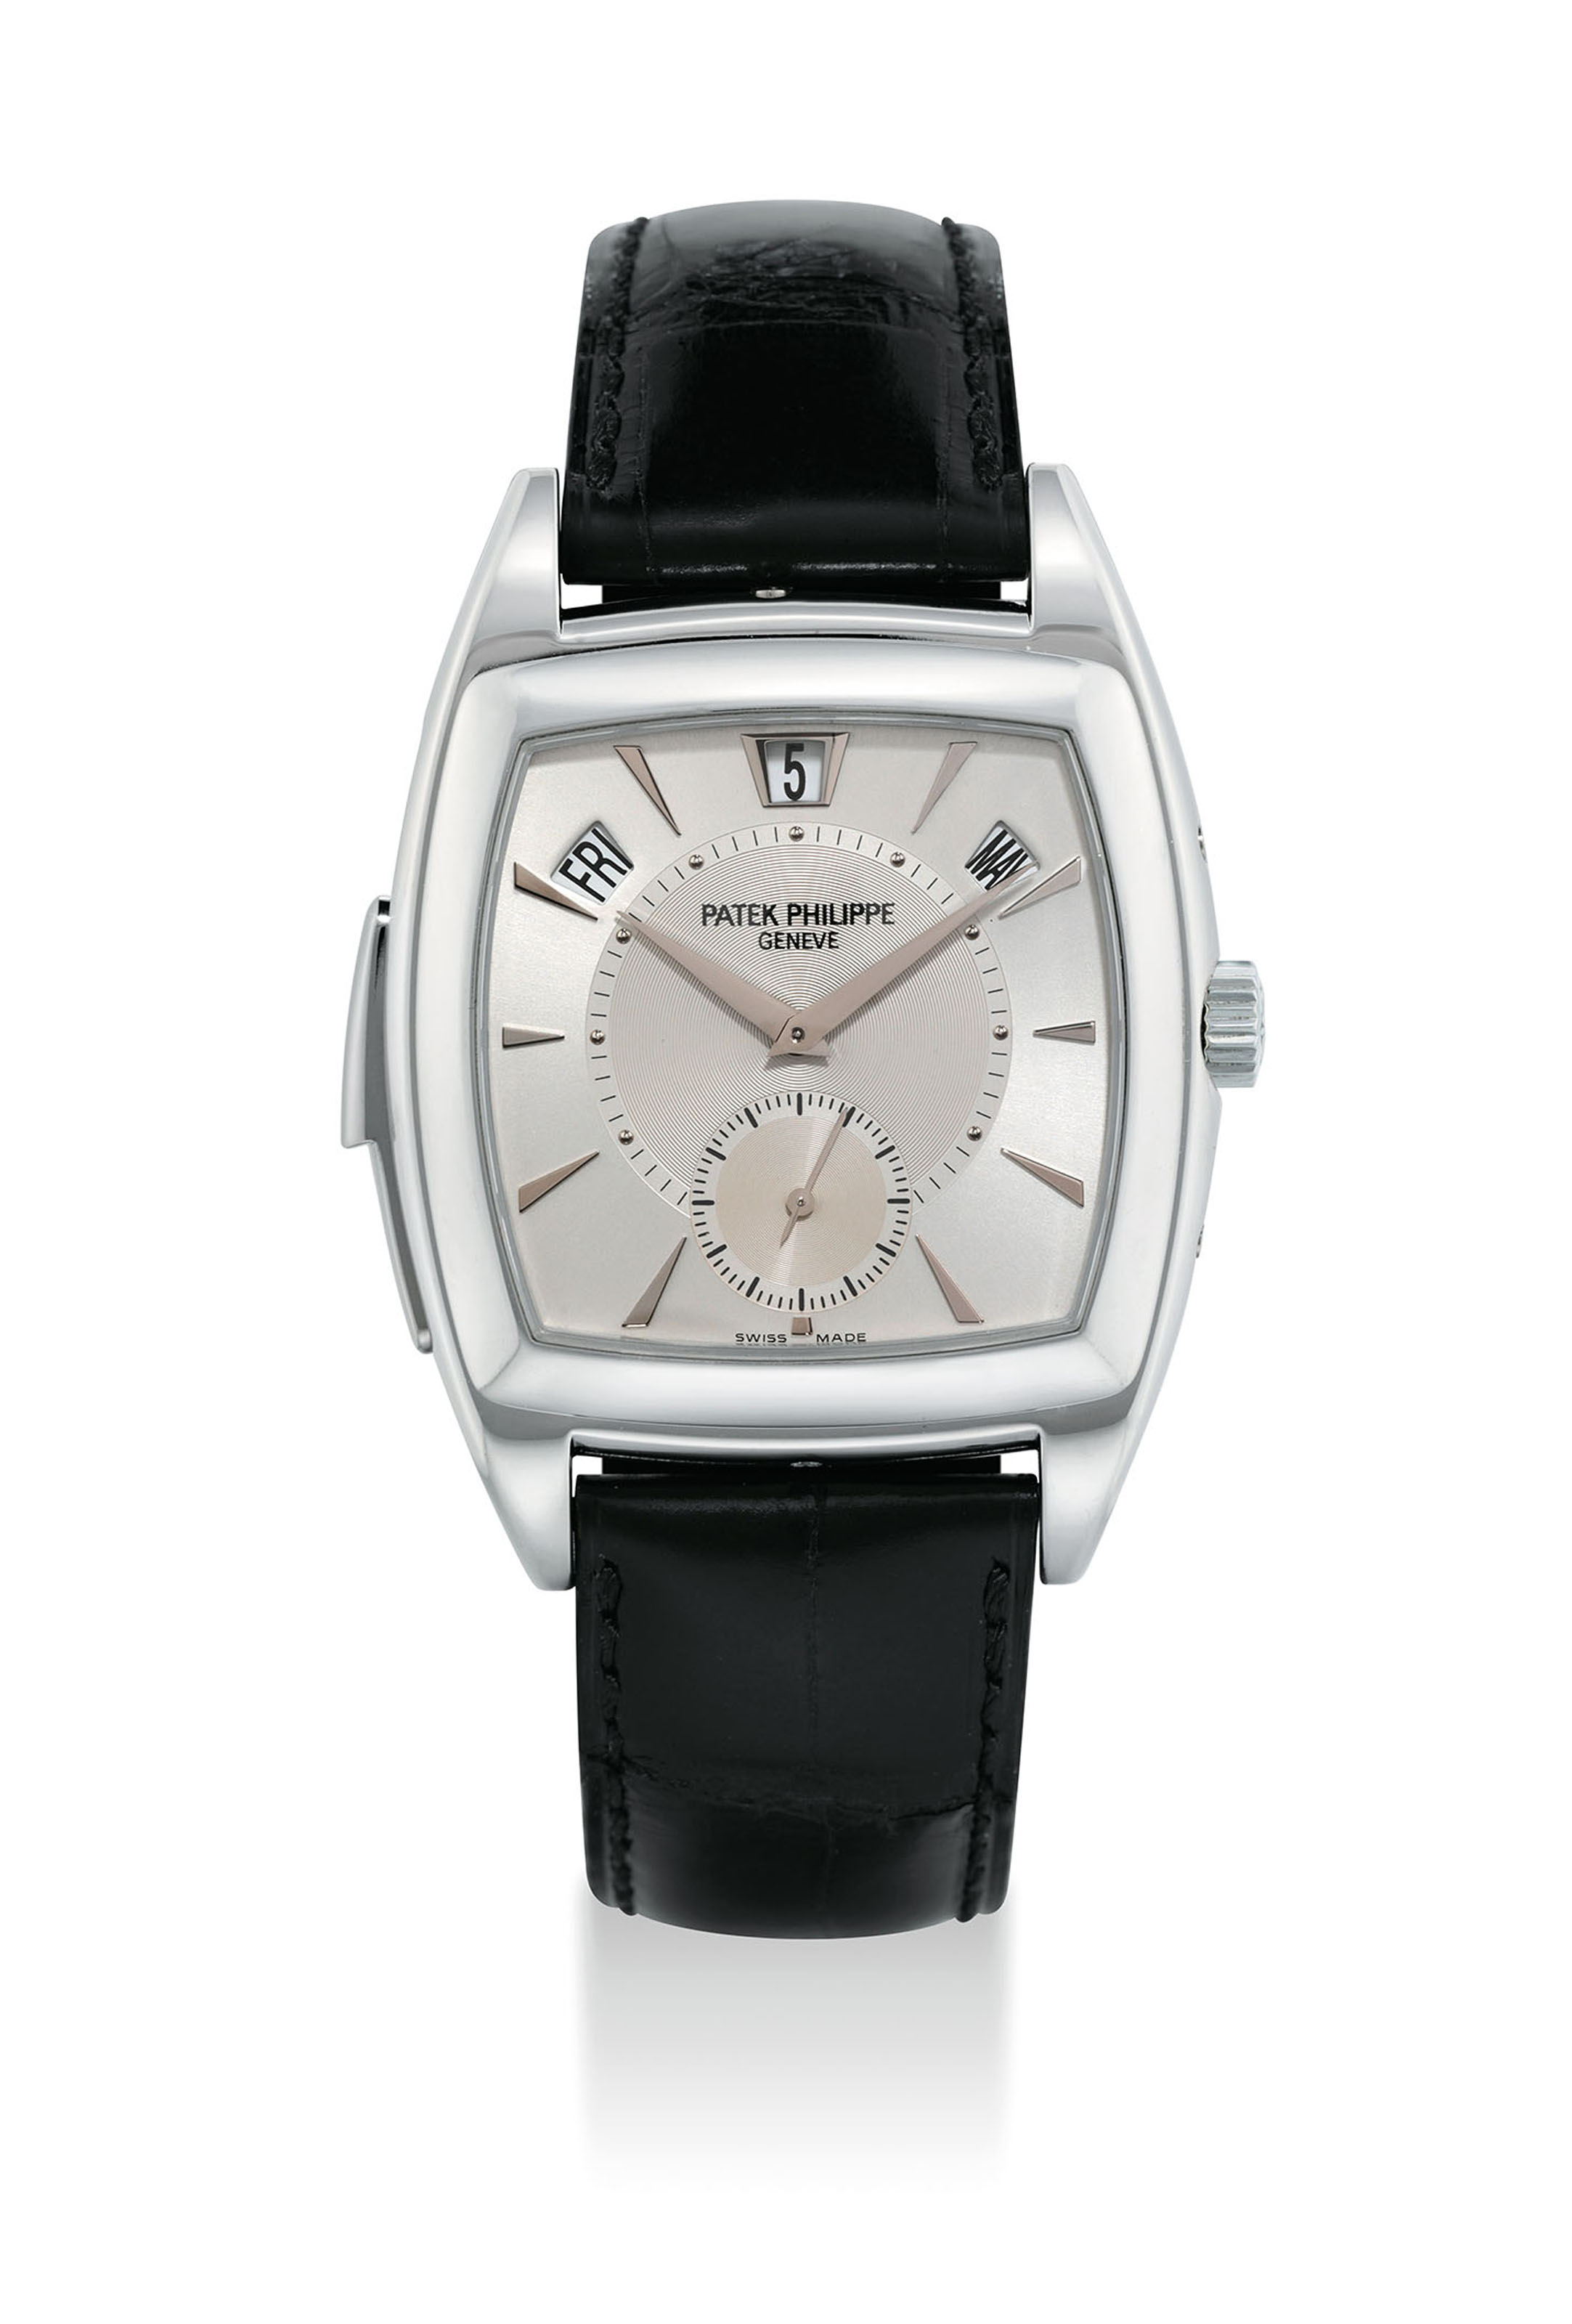 PATEK PHILIPPE. A VERY FINE AND RARE PLATINUM TONNEAU-SHAPED AUTOMATIC MINUTE REPEATING ANNUAL CALENDAR WRISTWATCH WITH ORIGINAL CERTIFICATE, ADDITIONAL CASE BACK AND BOX